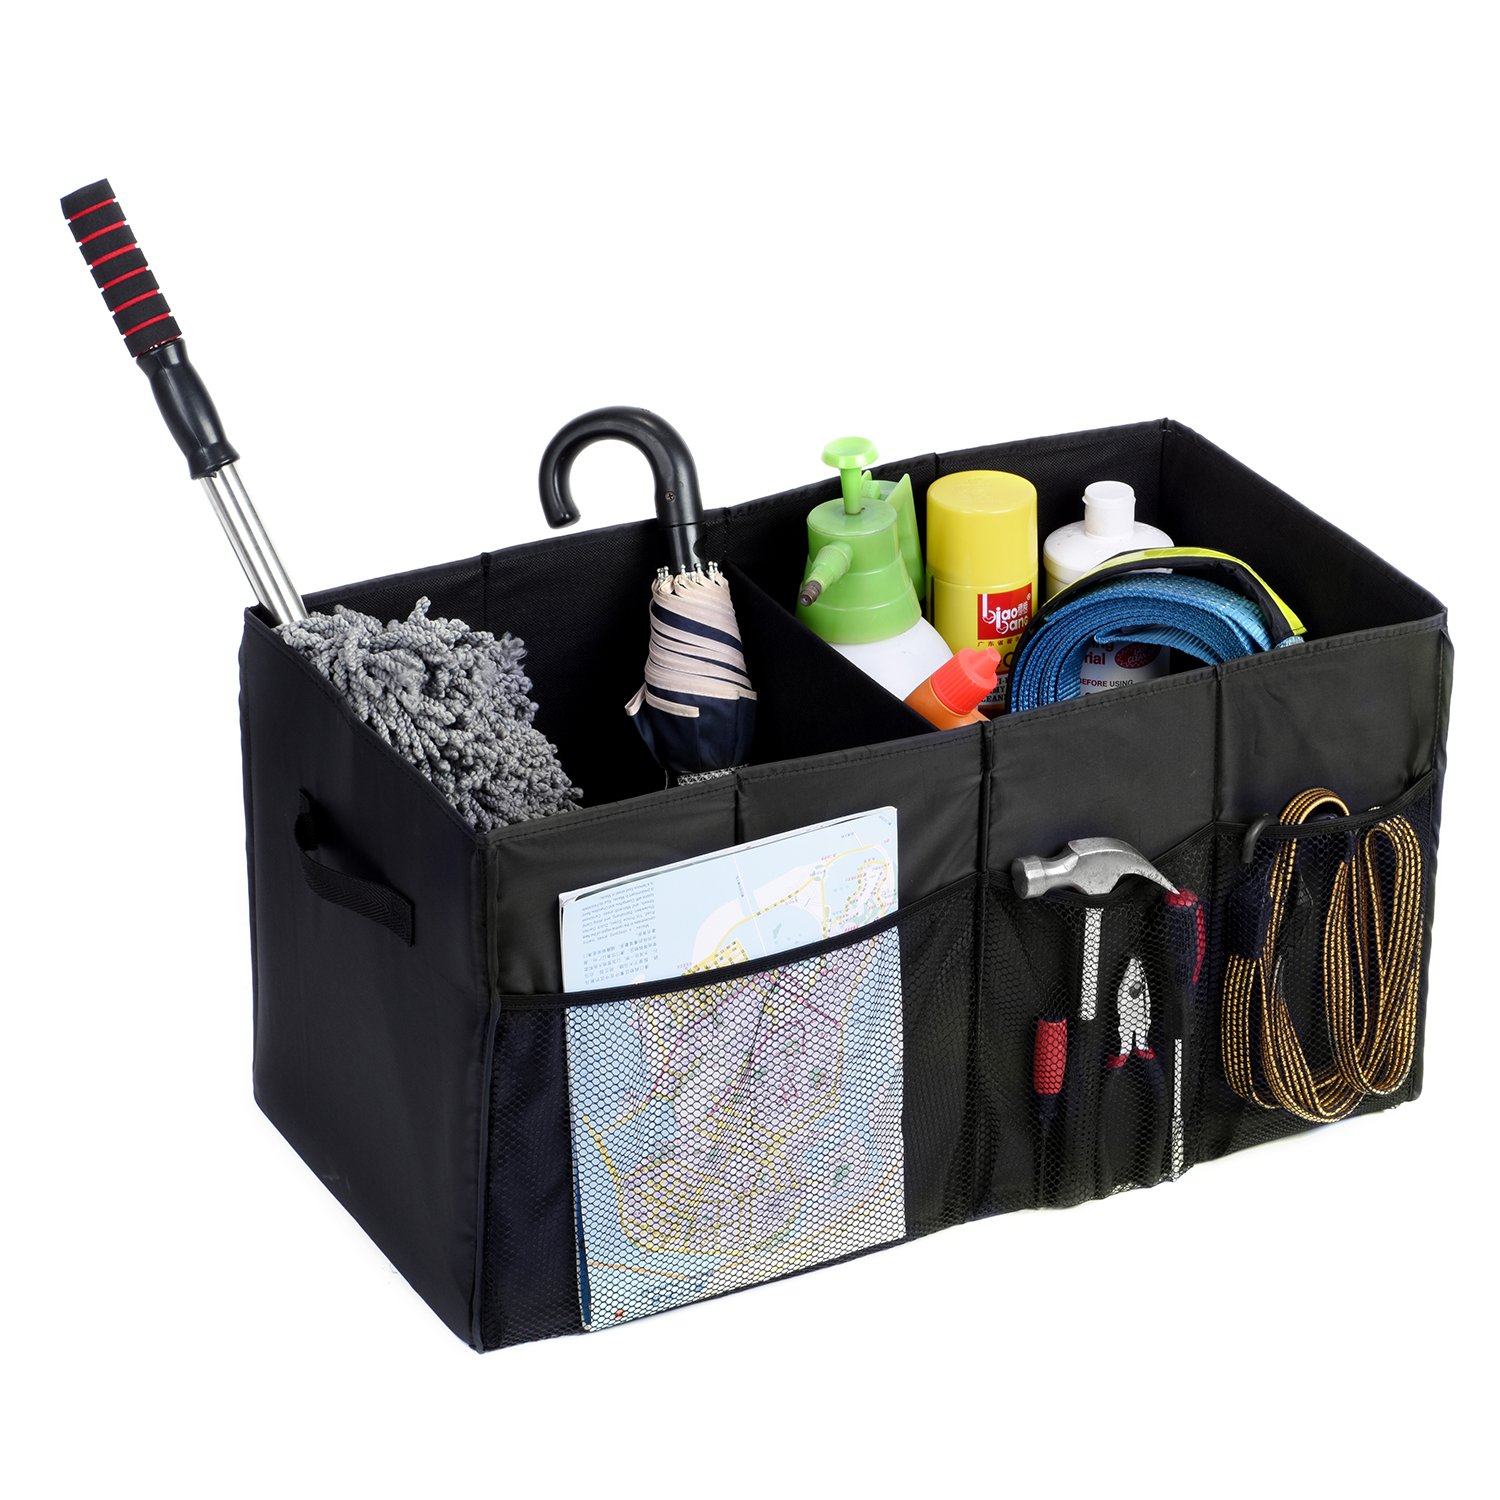 MaidMAX Car Trunk Organizer for SUV with Two Handles and Side Pockets, Foldable, Black, 25.5 Inches Long by MaidMAX (Image #2)